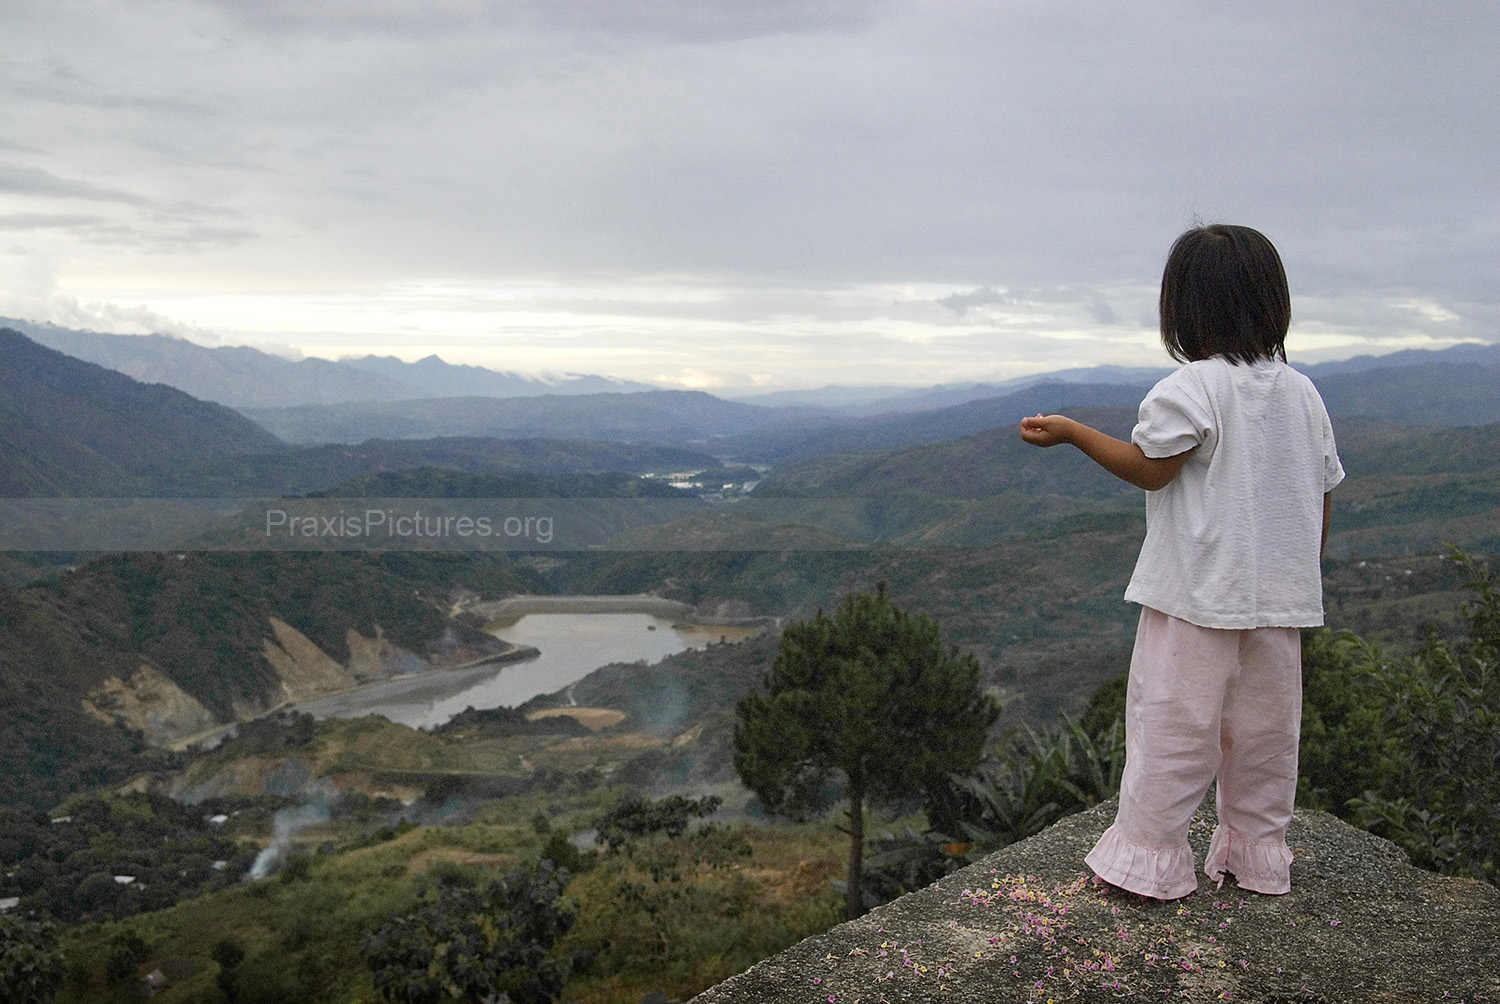 TRIXIE - Standing a few meters away from her home in Benguet province, Philippines, Trixie looks down at the tailings dam of the Victoria Gold Mine where the toxic waste from the mining process is dumped at a rate ranging between 1,500 and 2,500 metric tons per day. This is the third dam built here after the previous two collapsed. This particular dam has been completely inadequate against the torrential downpour during the yearly rainy season and is especially vulnerable to earthquakes as Benguet is directly above a fault line. For years the chemicals have been leaking out into the nearby river systems.